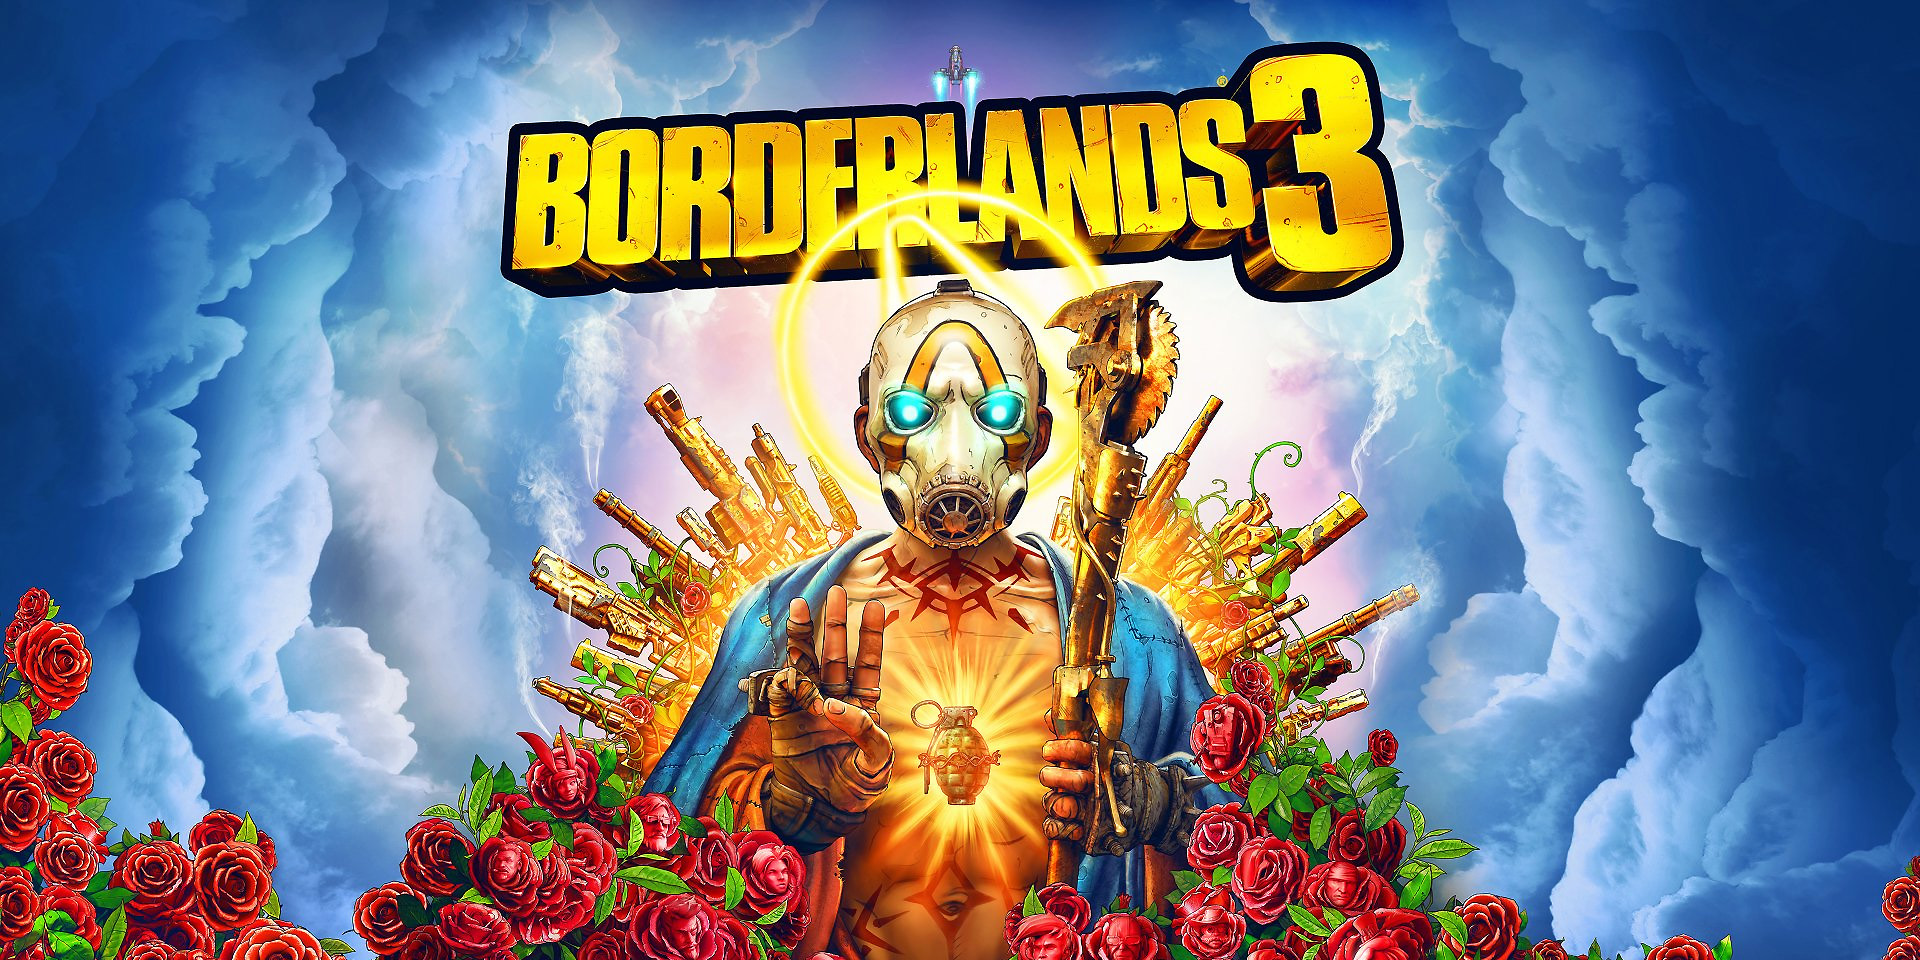 Today's Best Game Deals: Borderlands 3 $20, COD Modern Warfare $40, more - 9to5Toys